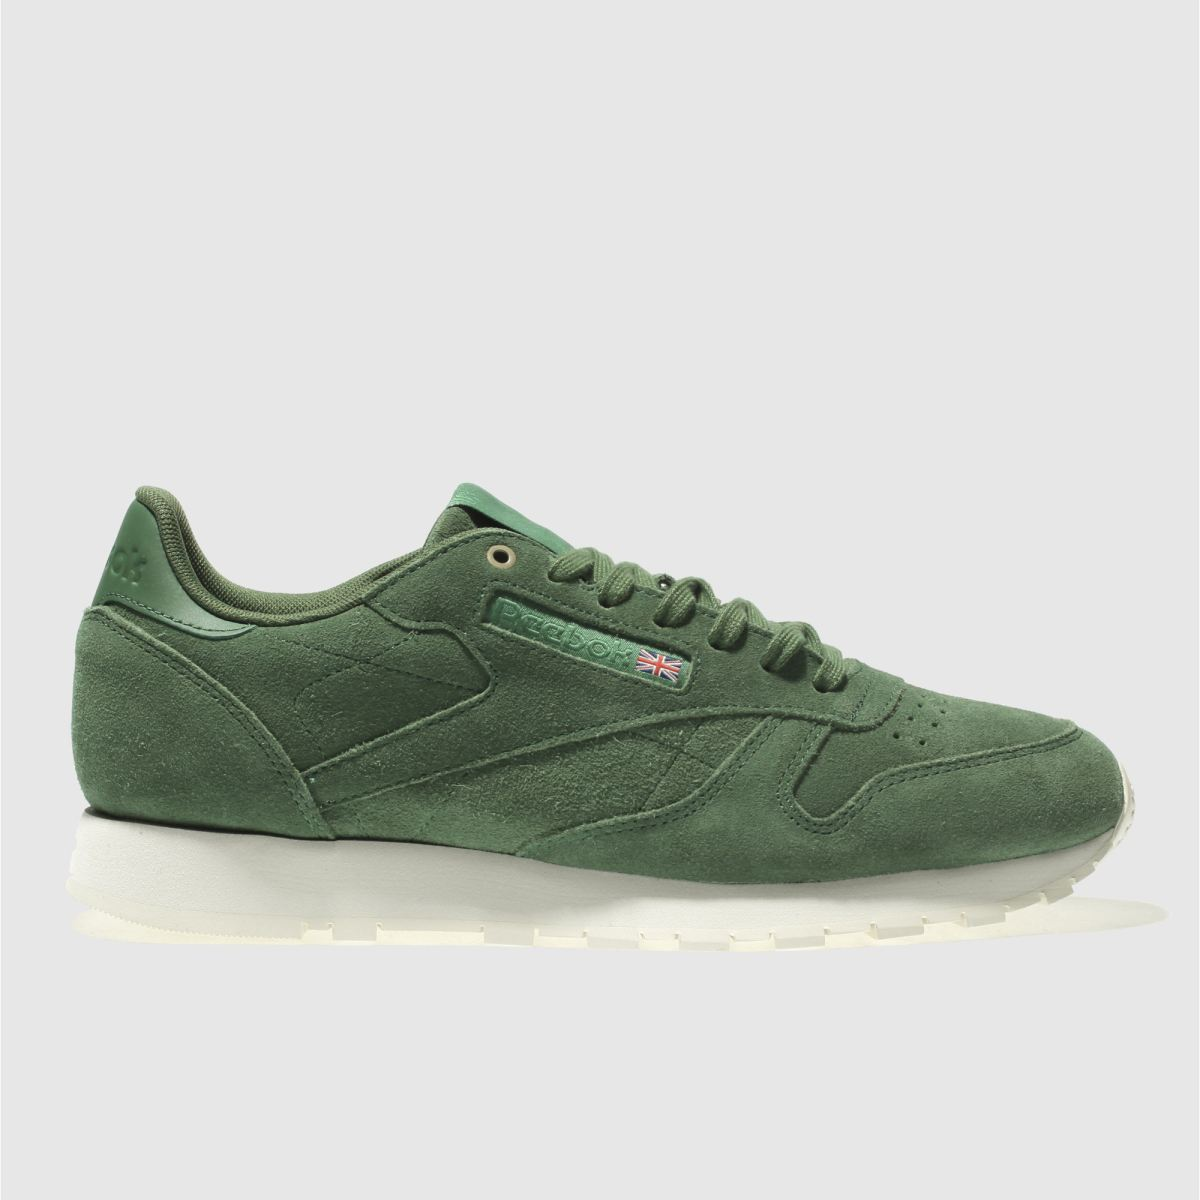 Reebok Green Classic Leather Mcc Trainers